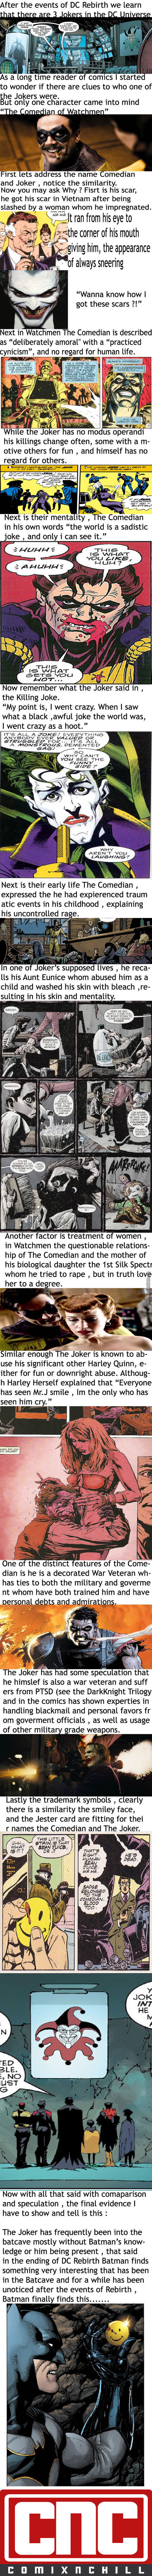 The Joker Is The Comedian Theory Or Comparison